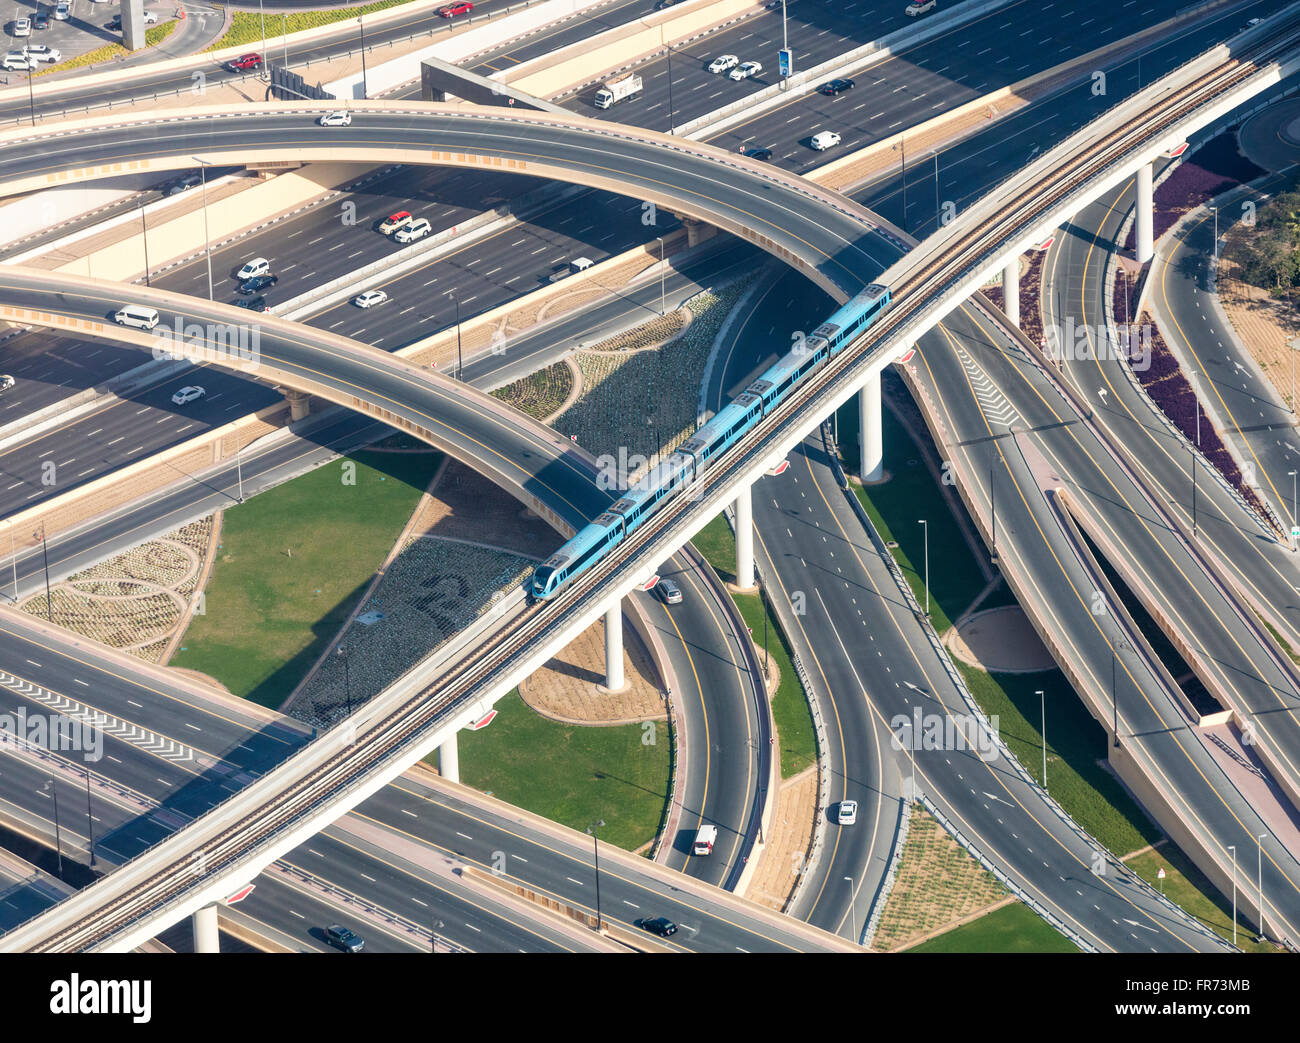 Highways, ramps, and urban railway in Dubai, UAE. Photographed from Burj Khalifa observation deck. - Stock Image